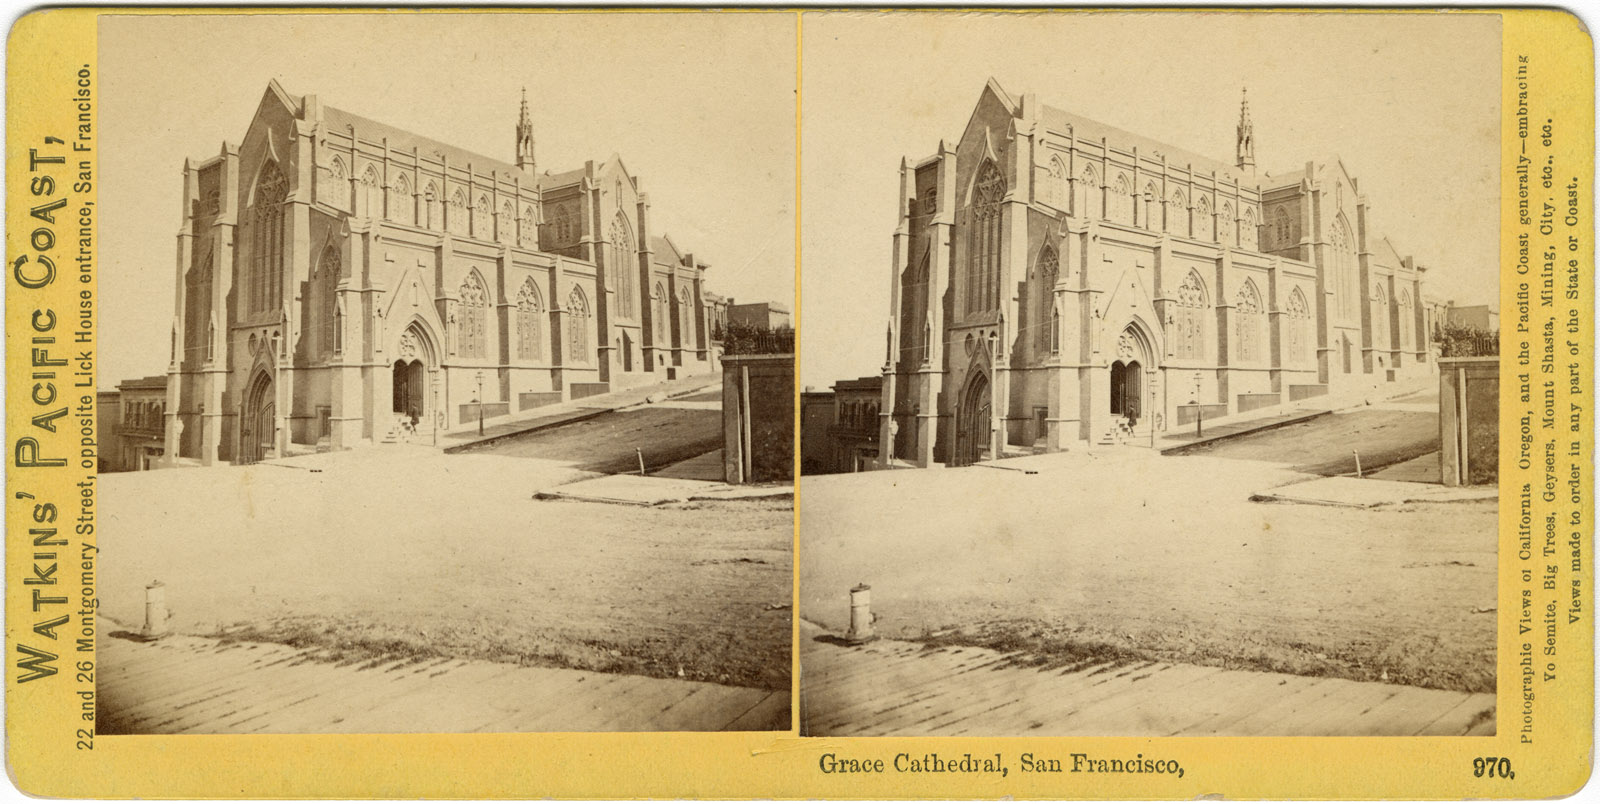 Watkins #970 - Grace Cathedral, San Francisco